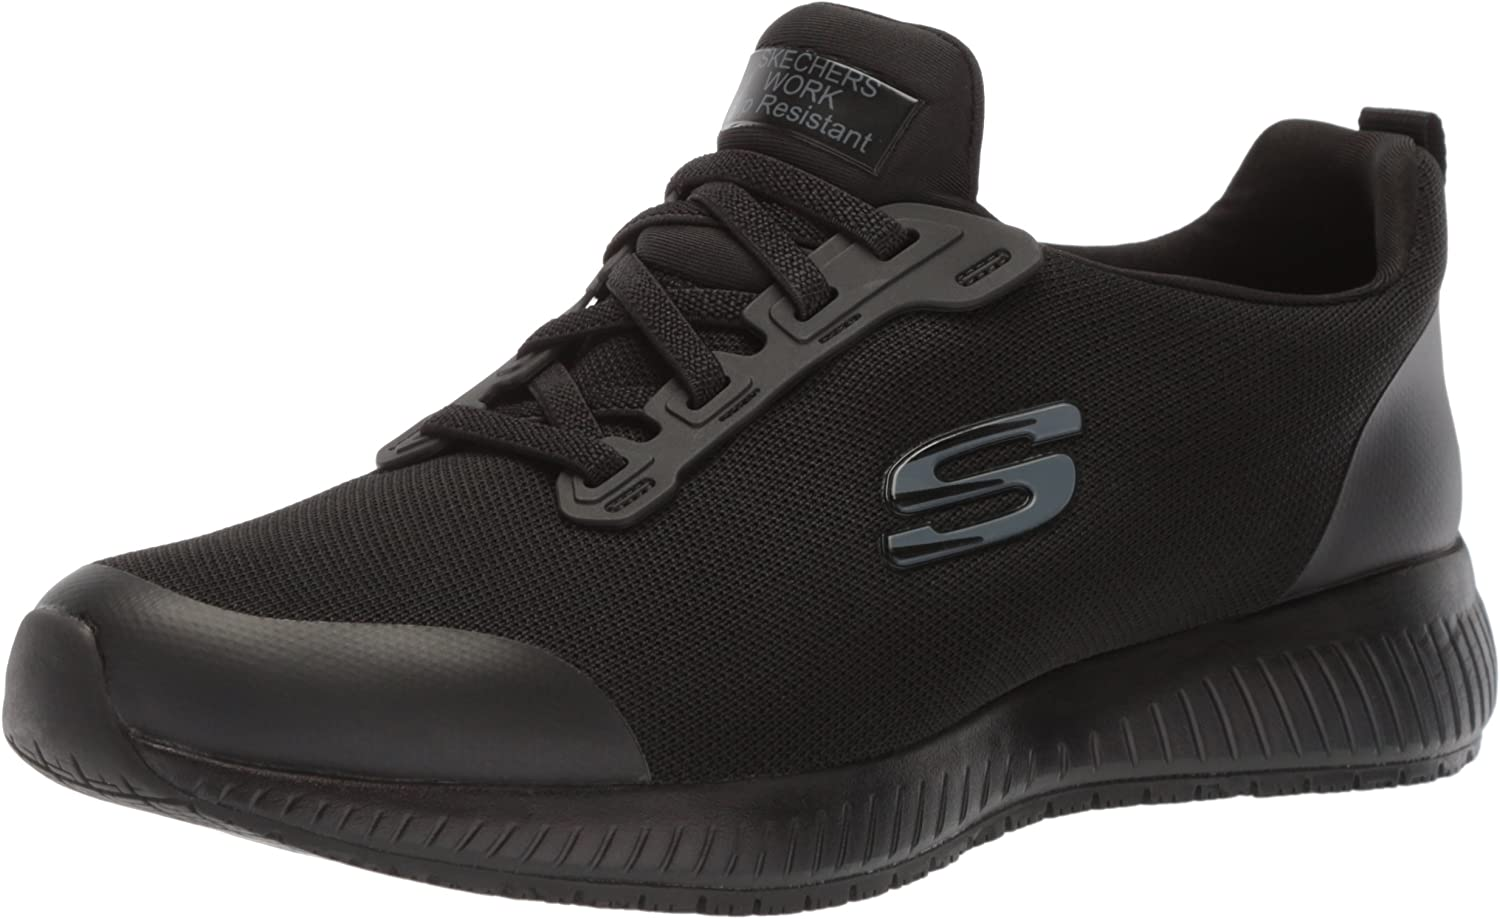 Top 10 Womens Black Food Service Work Shoes